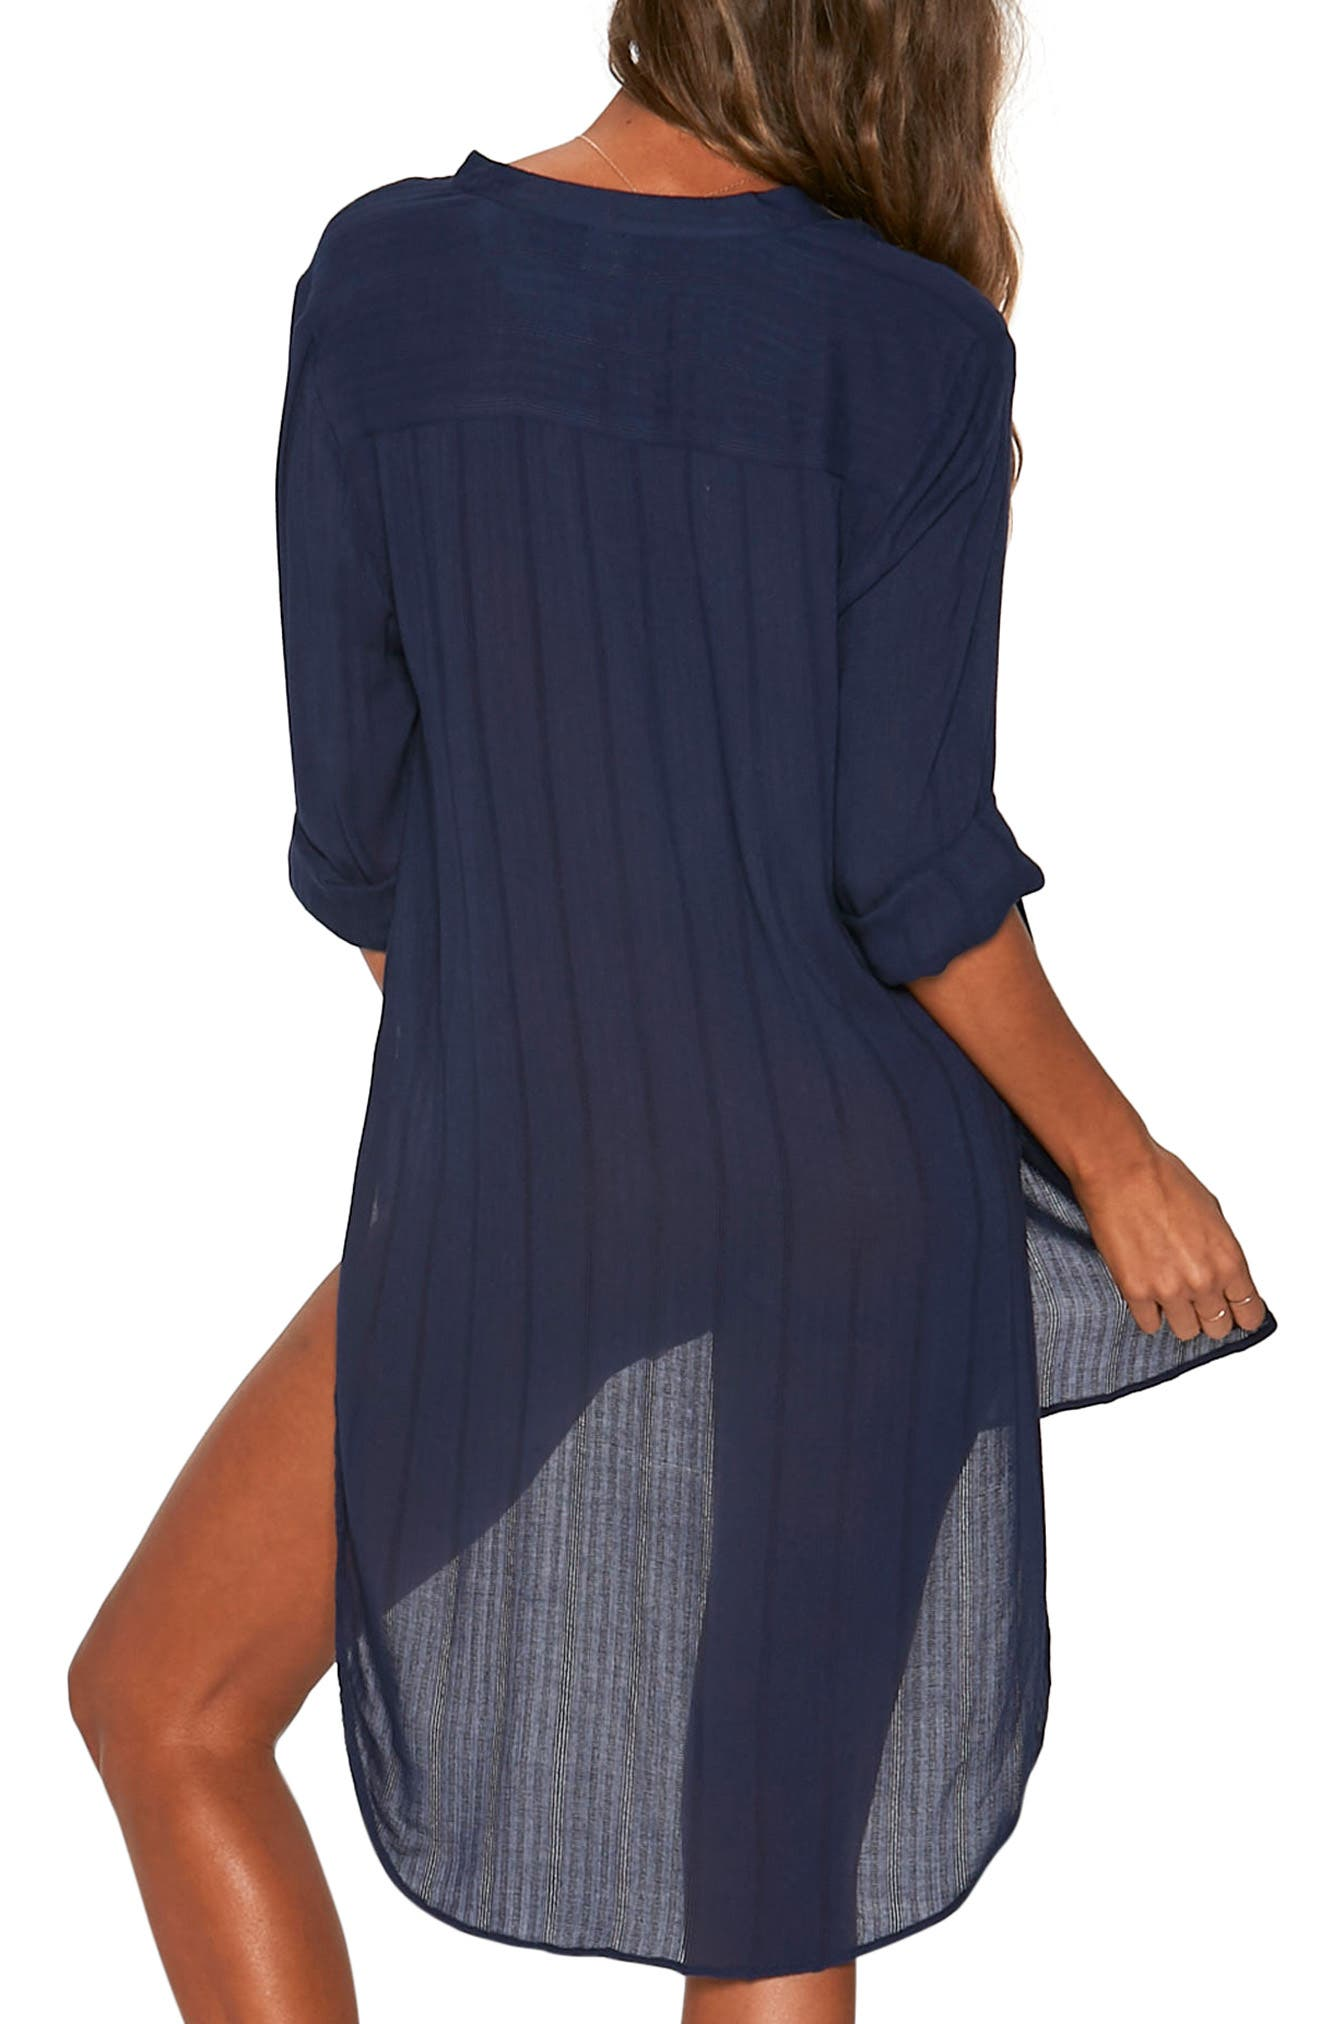 Megan Cover-Up Tunic,                             Alternate thumbnail 2, color,                             MIDNIGHT BLUE